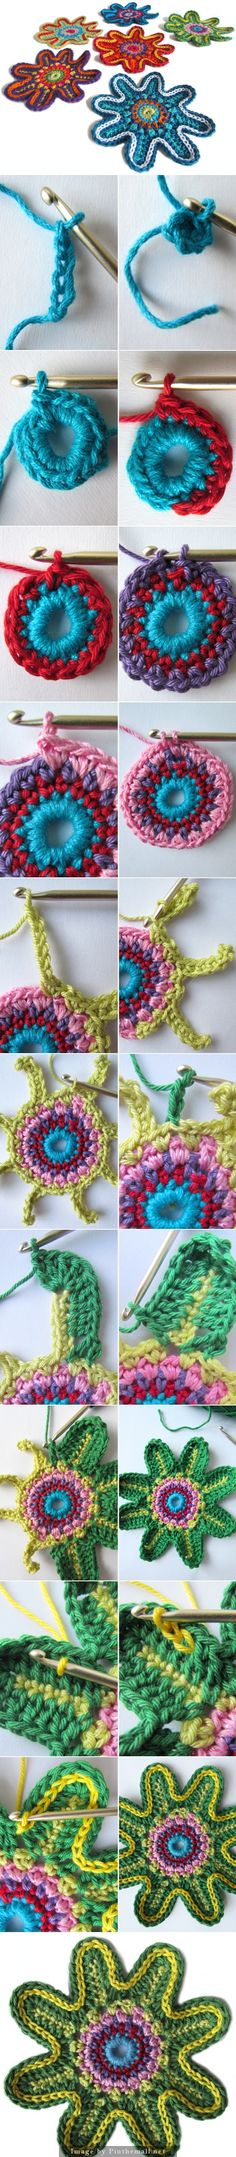 flower step by step tutorial - crochet flower   <3